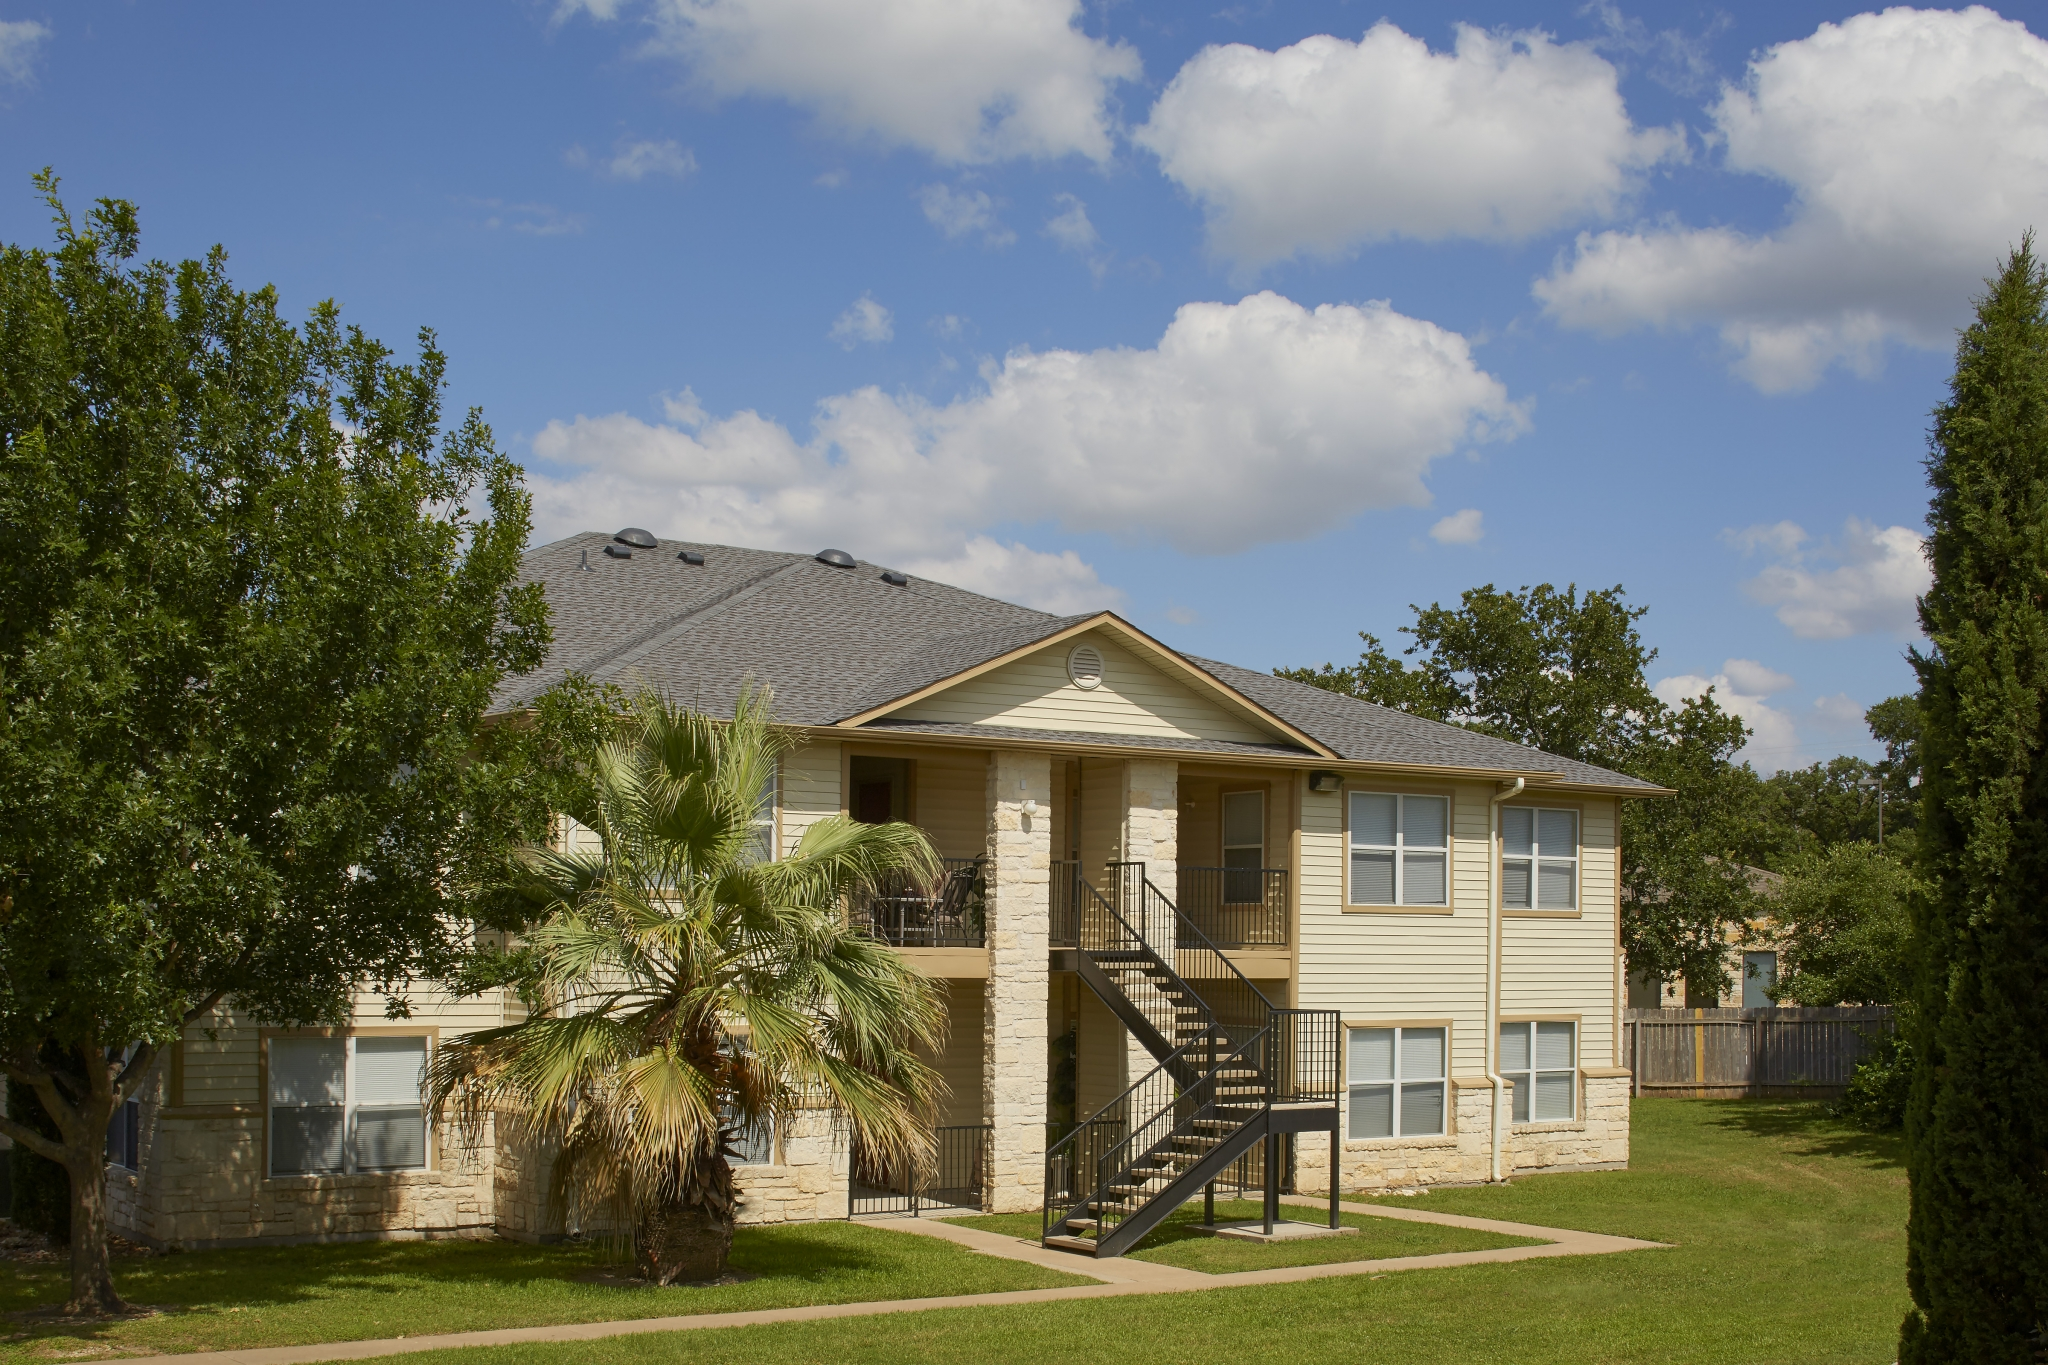 cypress garden apartments